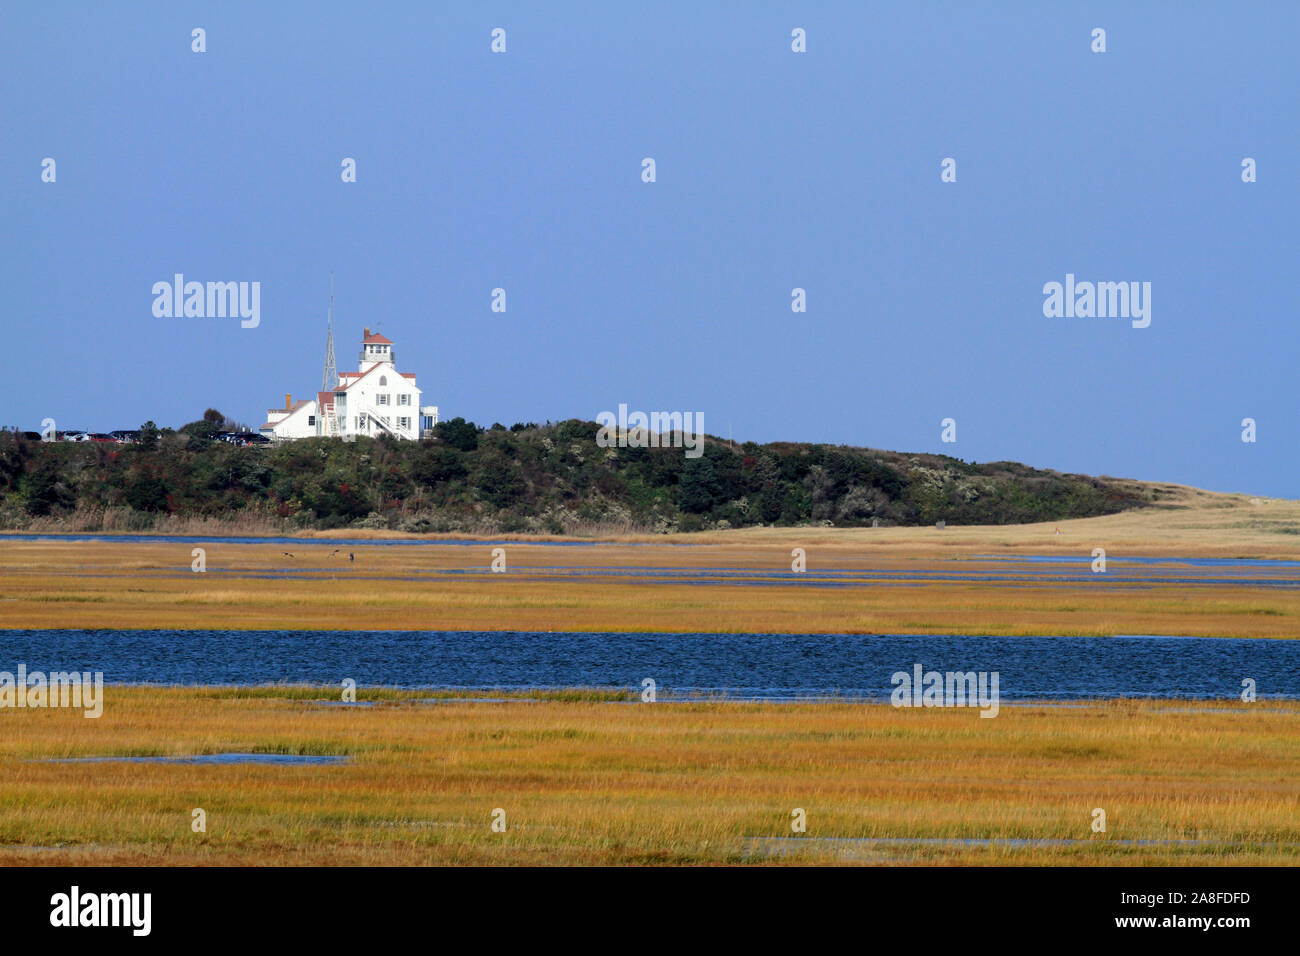 View overlooking Nauset Marsh and Coast Guard Station from Fort Hill in Eastham, Massachusetts Stock Photo